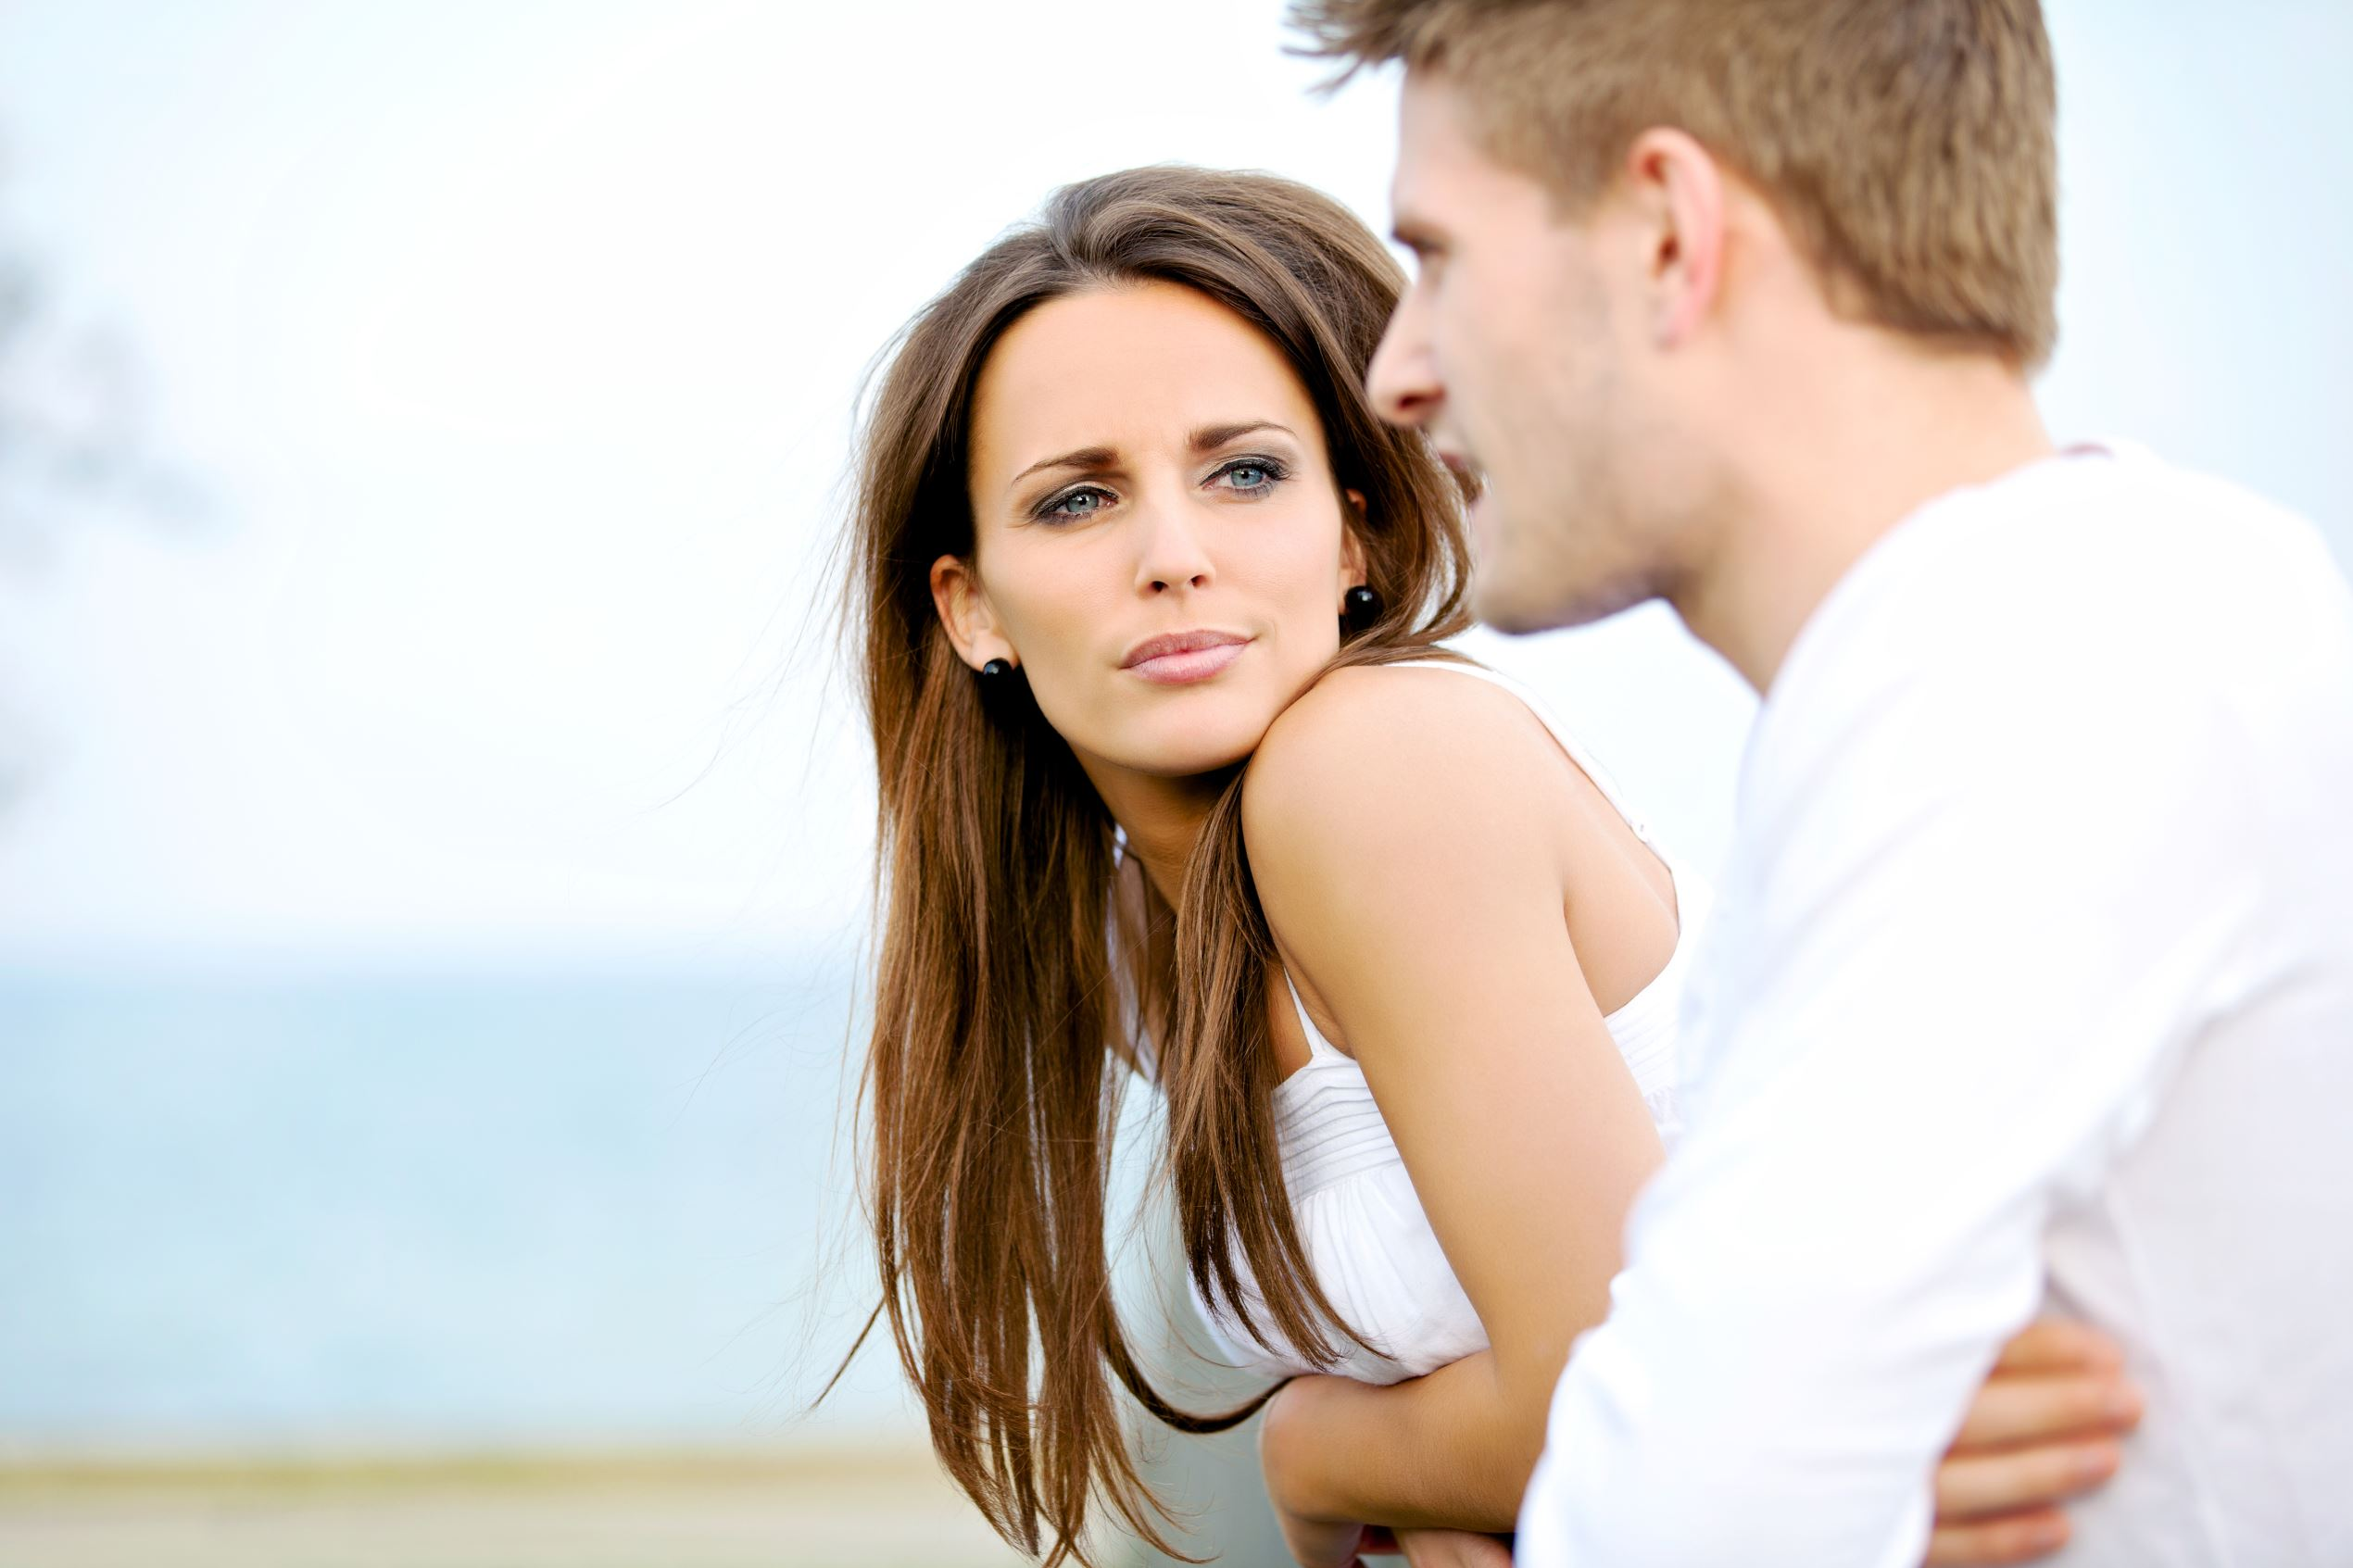 dating seriously after divorce